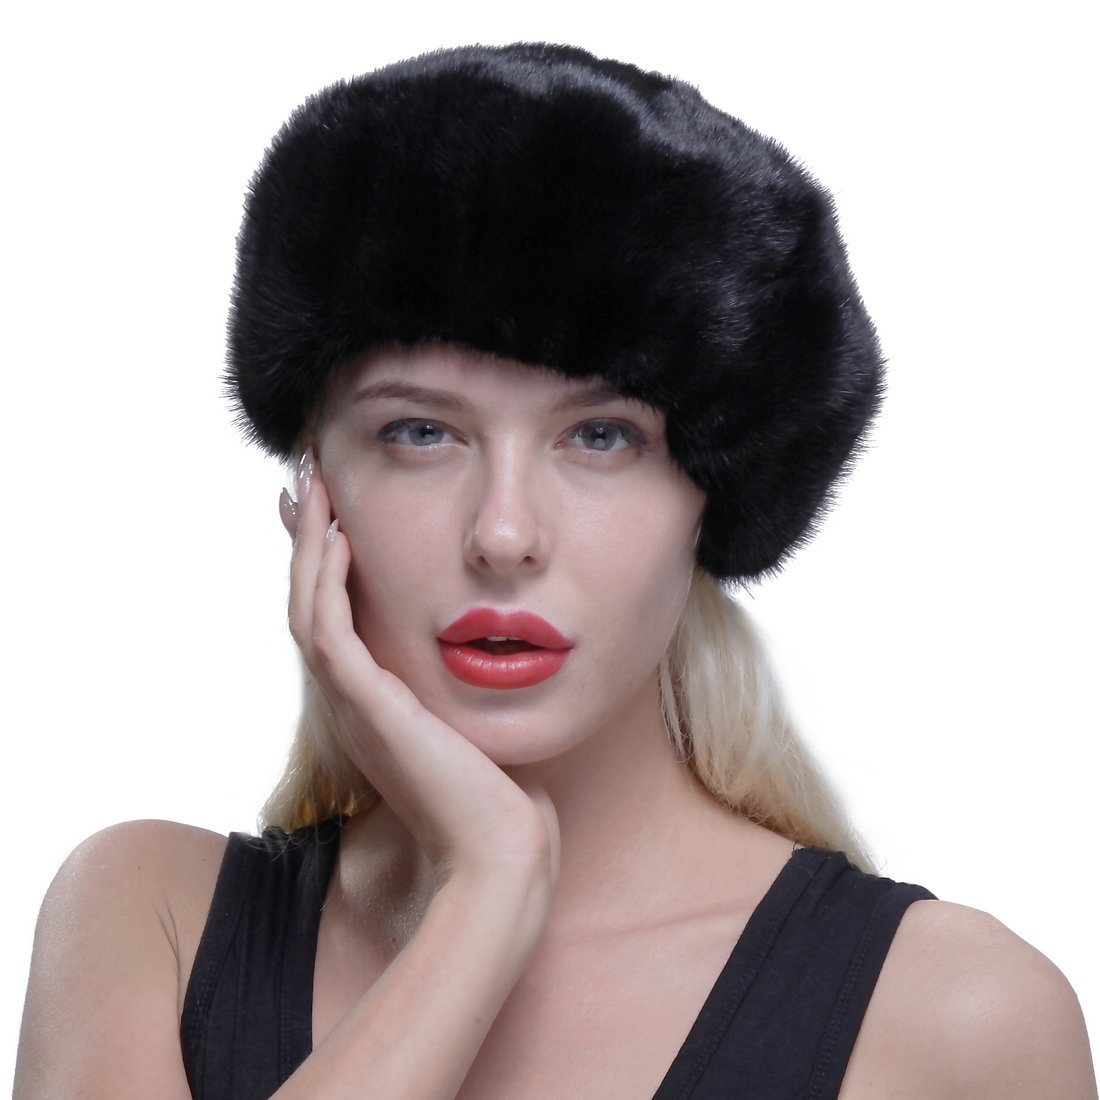 URSFUR Genuine Mink Beret Ladies Winter Fur Hat Cap Black at Amazon Women s  Clothing store  d4f6c731640